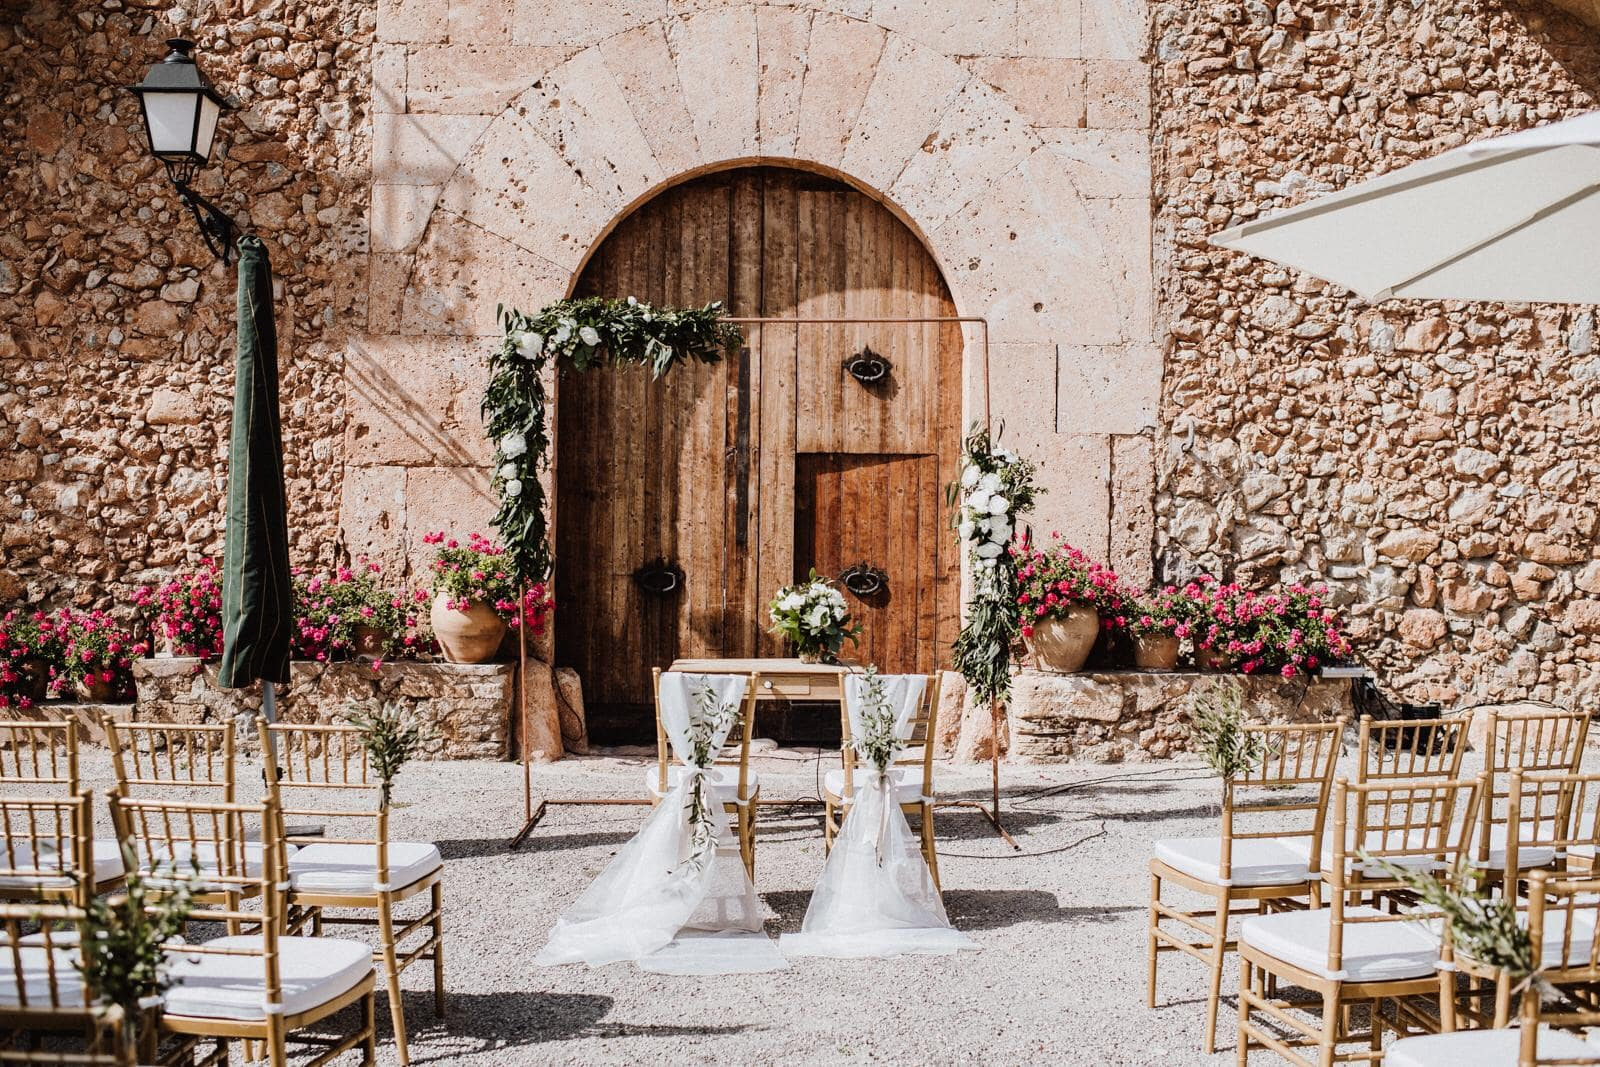 Beautiful places for weddings in Spain